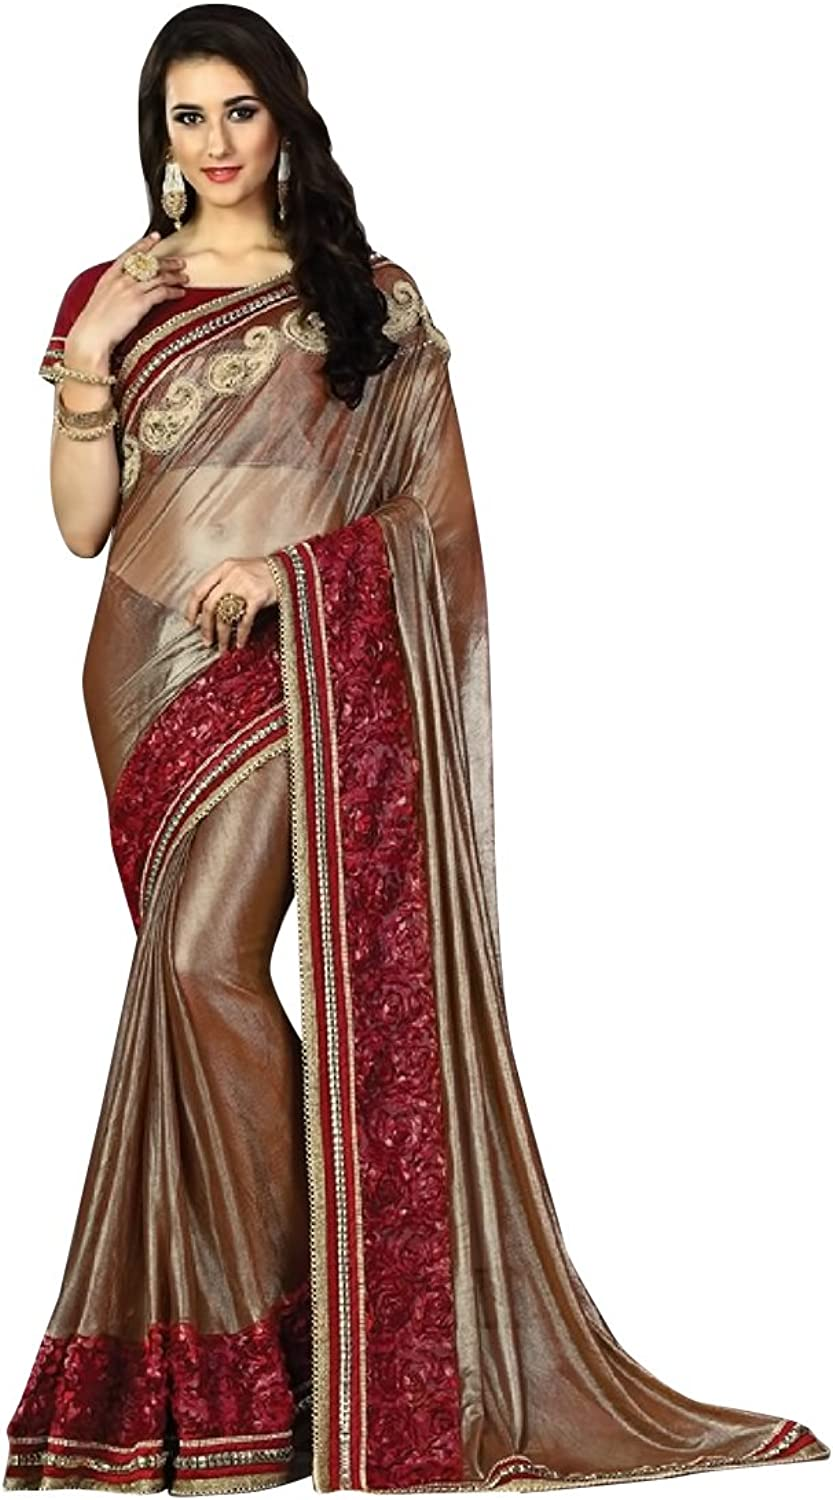 BRIDAL BOLLYWOOD DESIGNER SAREE SARI WEDDING CEREMONY PARTY WEAR INDIAN MUSLIM